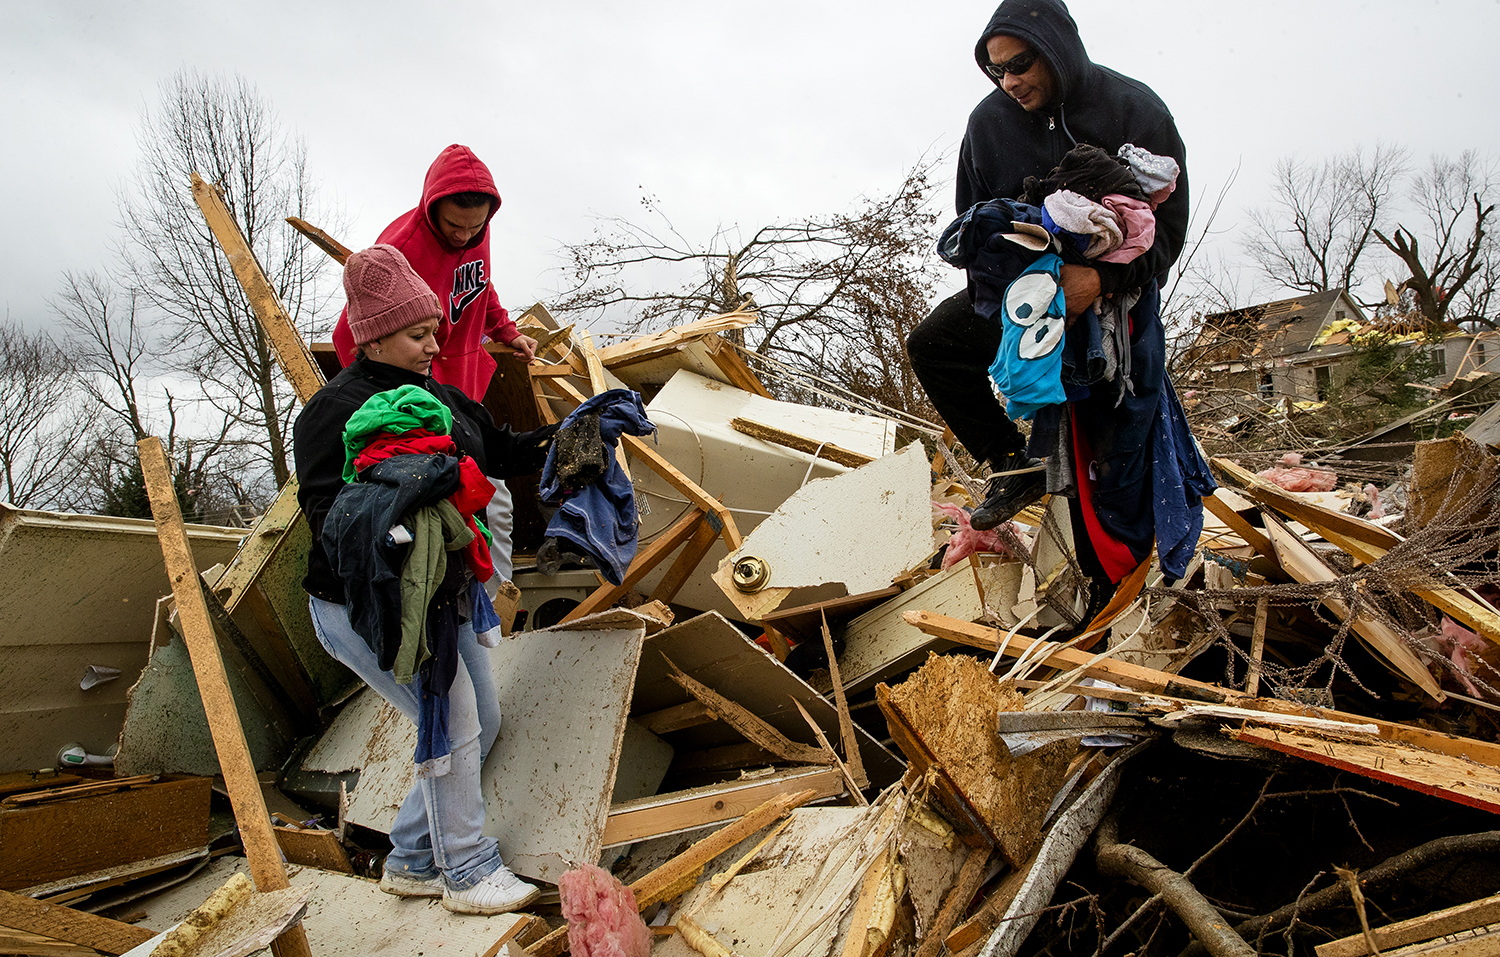 Katie Schafer, left, Marquice Barbour and George Bailey Sr. help sort through the debris for salvageable items from Tiffani Bailey's tornado-damaged house in in Taylorville Sunday, Dec. 2, 2018. [Ted Schurter/The State Journal-Register]